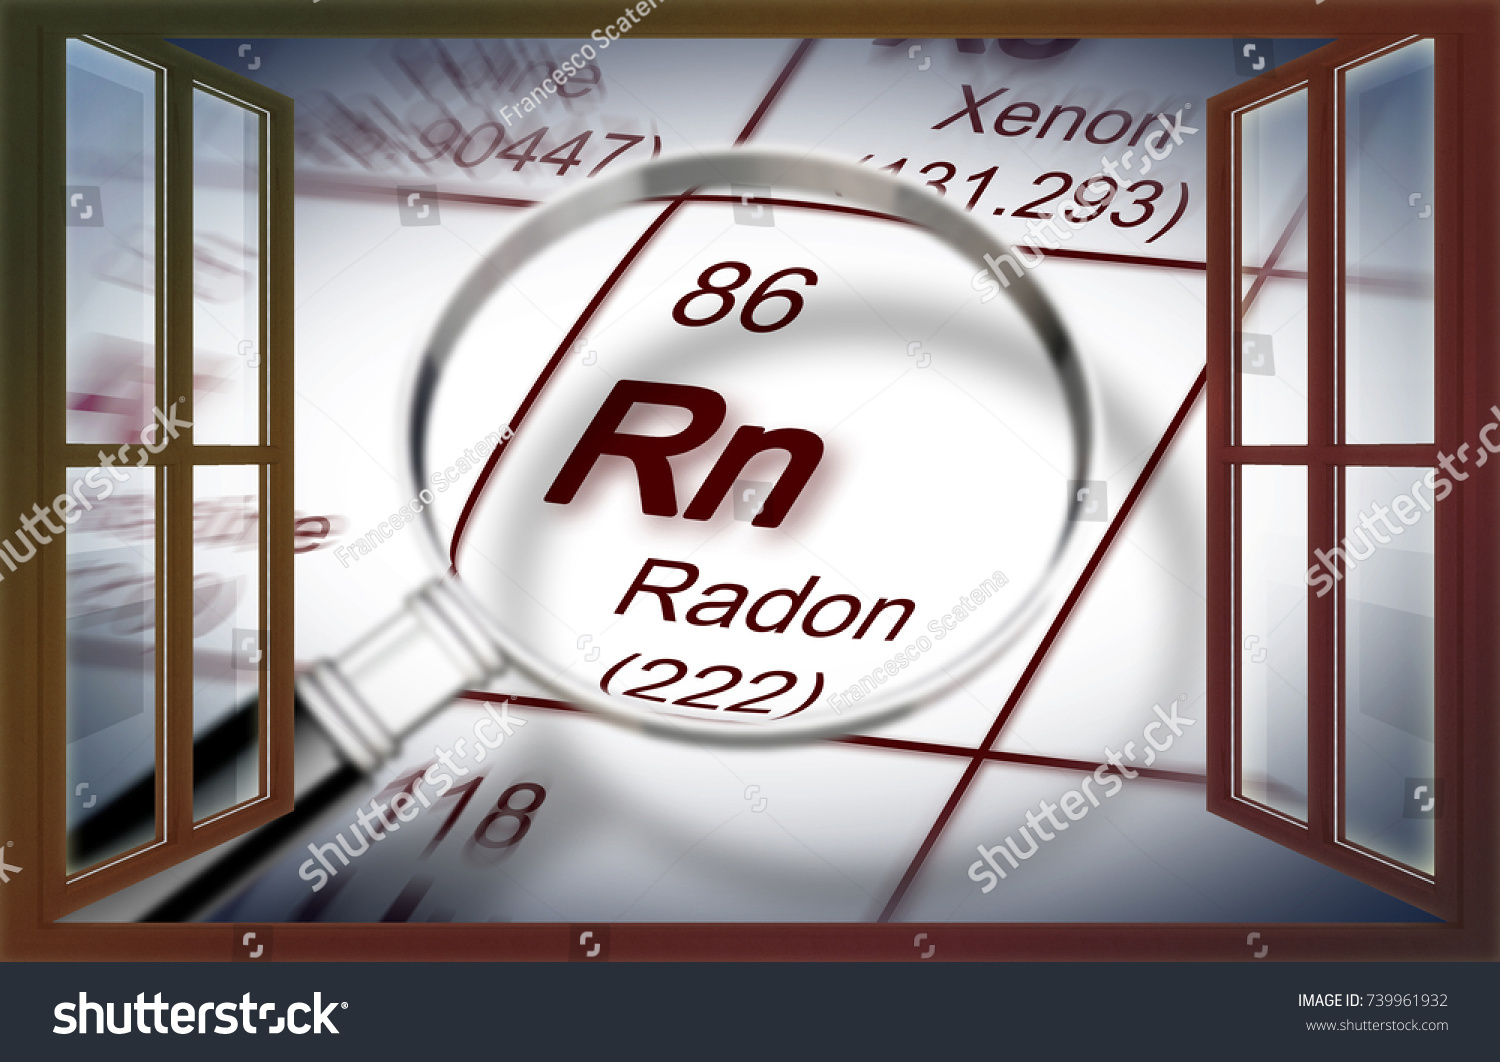 Danger radon gas our homes concept stock illustration 739961932 the danger of radon gas in our homes concept image with periodic table of the buycottarizona